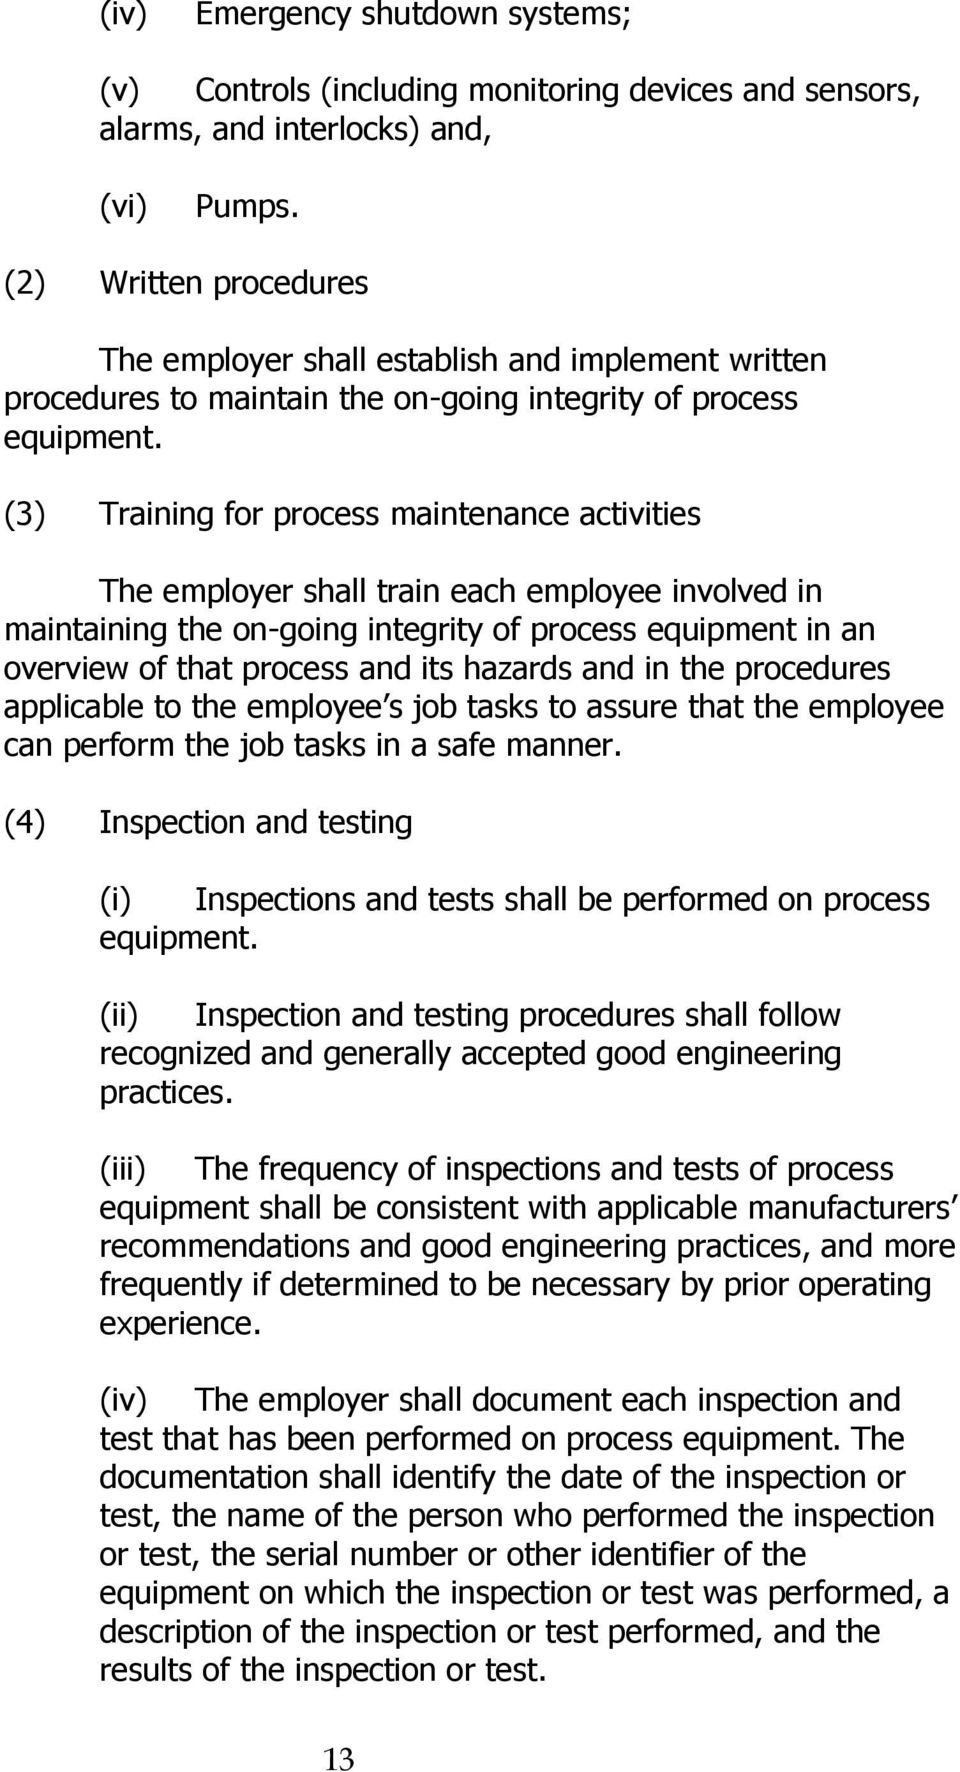 (3) Training for process maintenance activities The employer shall train each employee involved in maintaining the on-going integrity of process equipment in an overview of that process and its